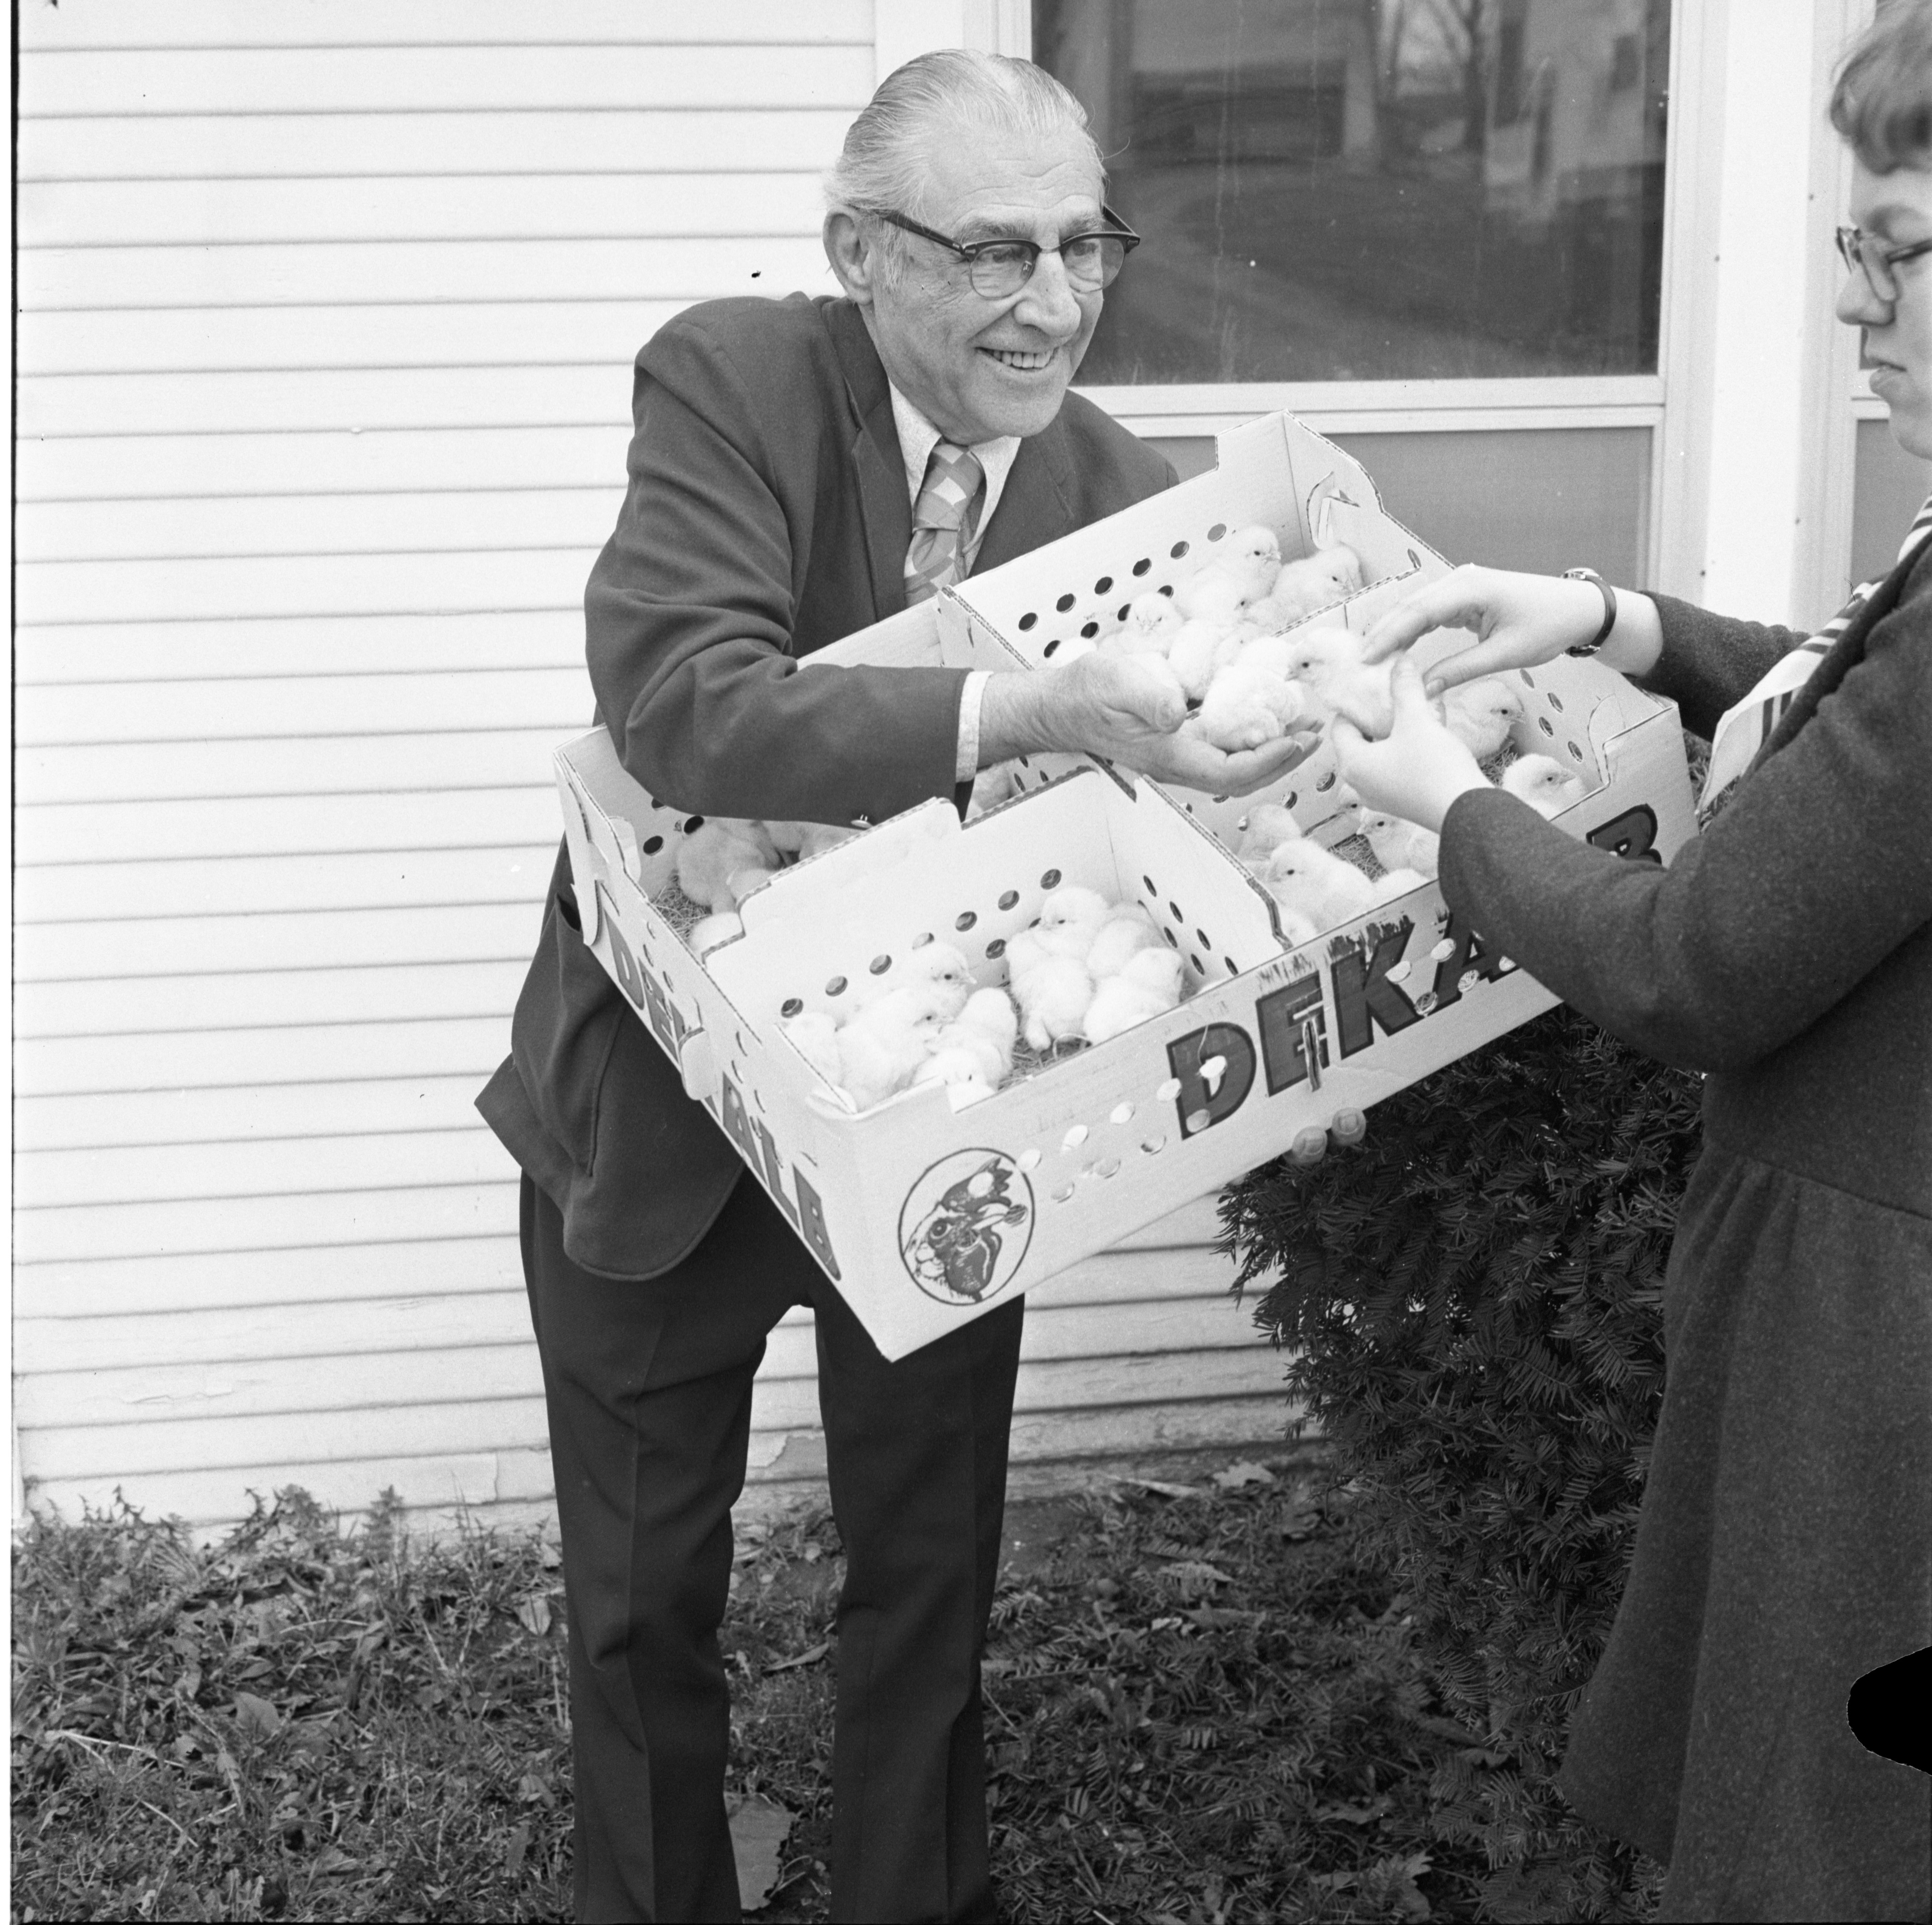 Luther Klager Displays Day-Old Chicks From Klager's Hatchery, April 1973 image